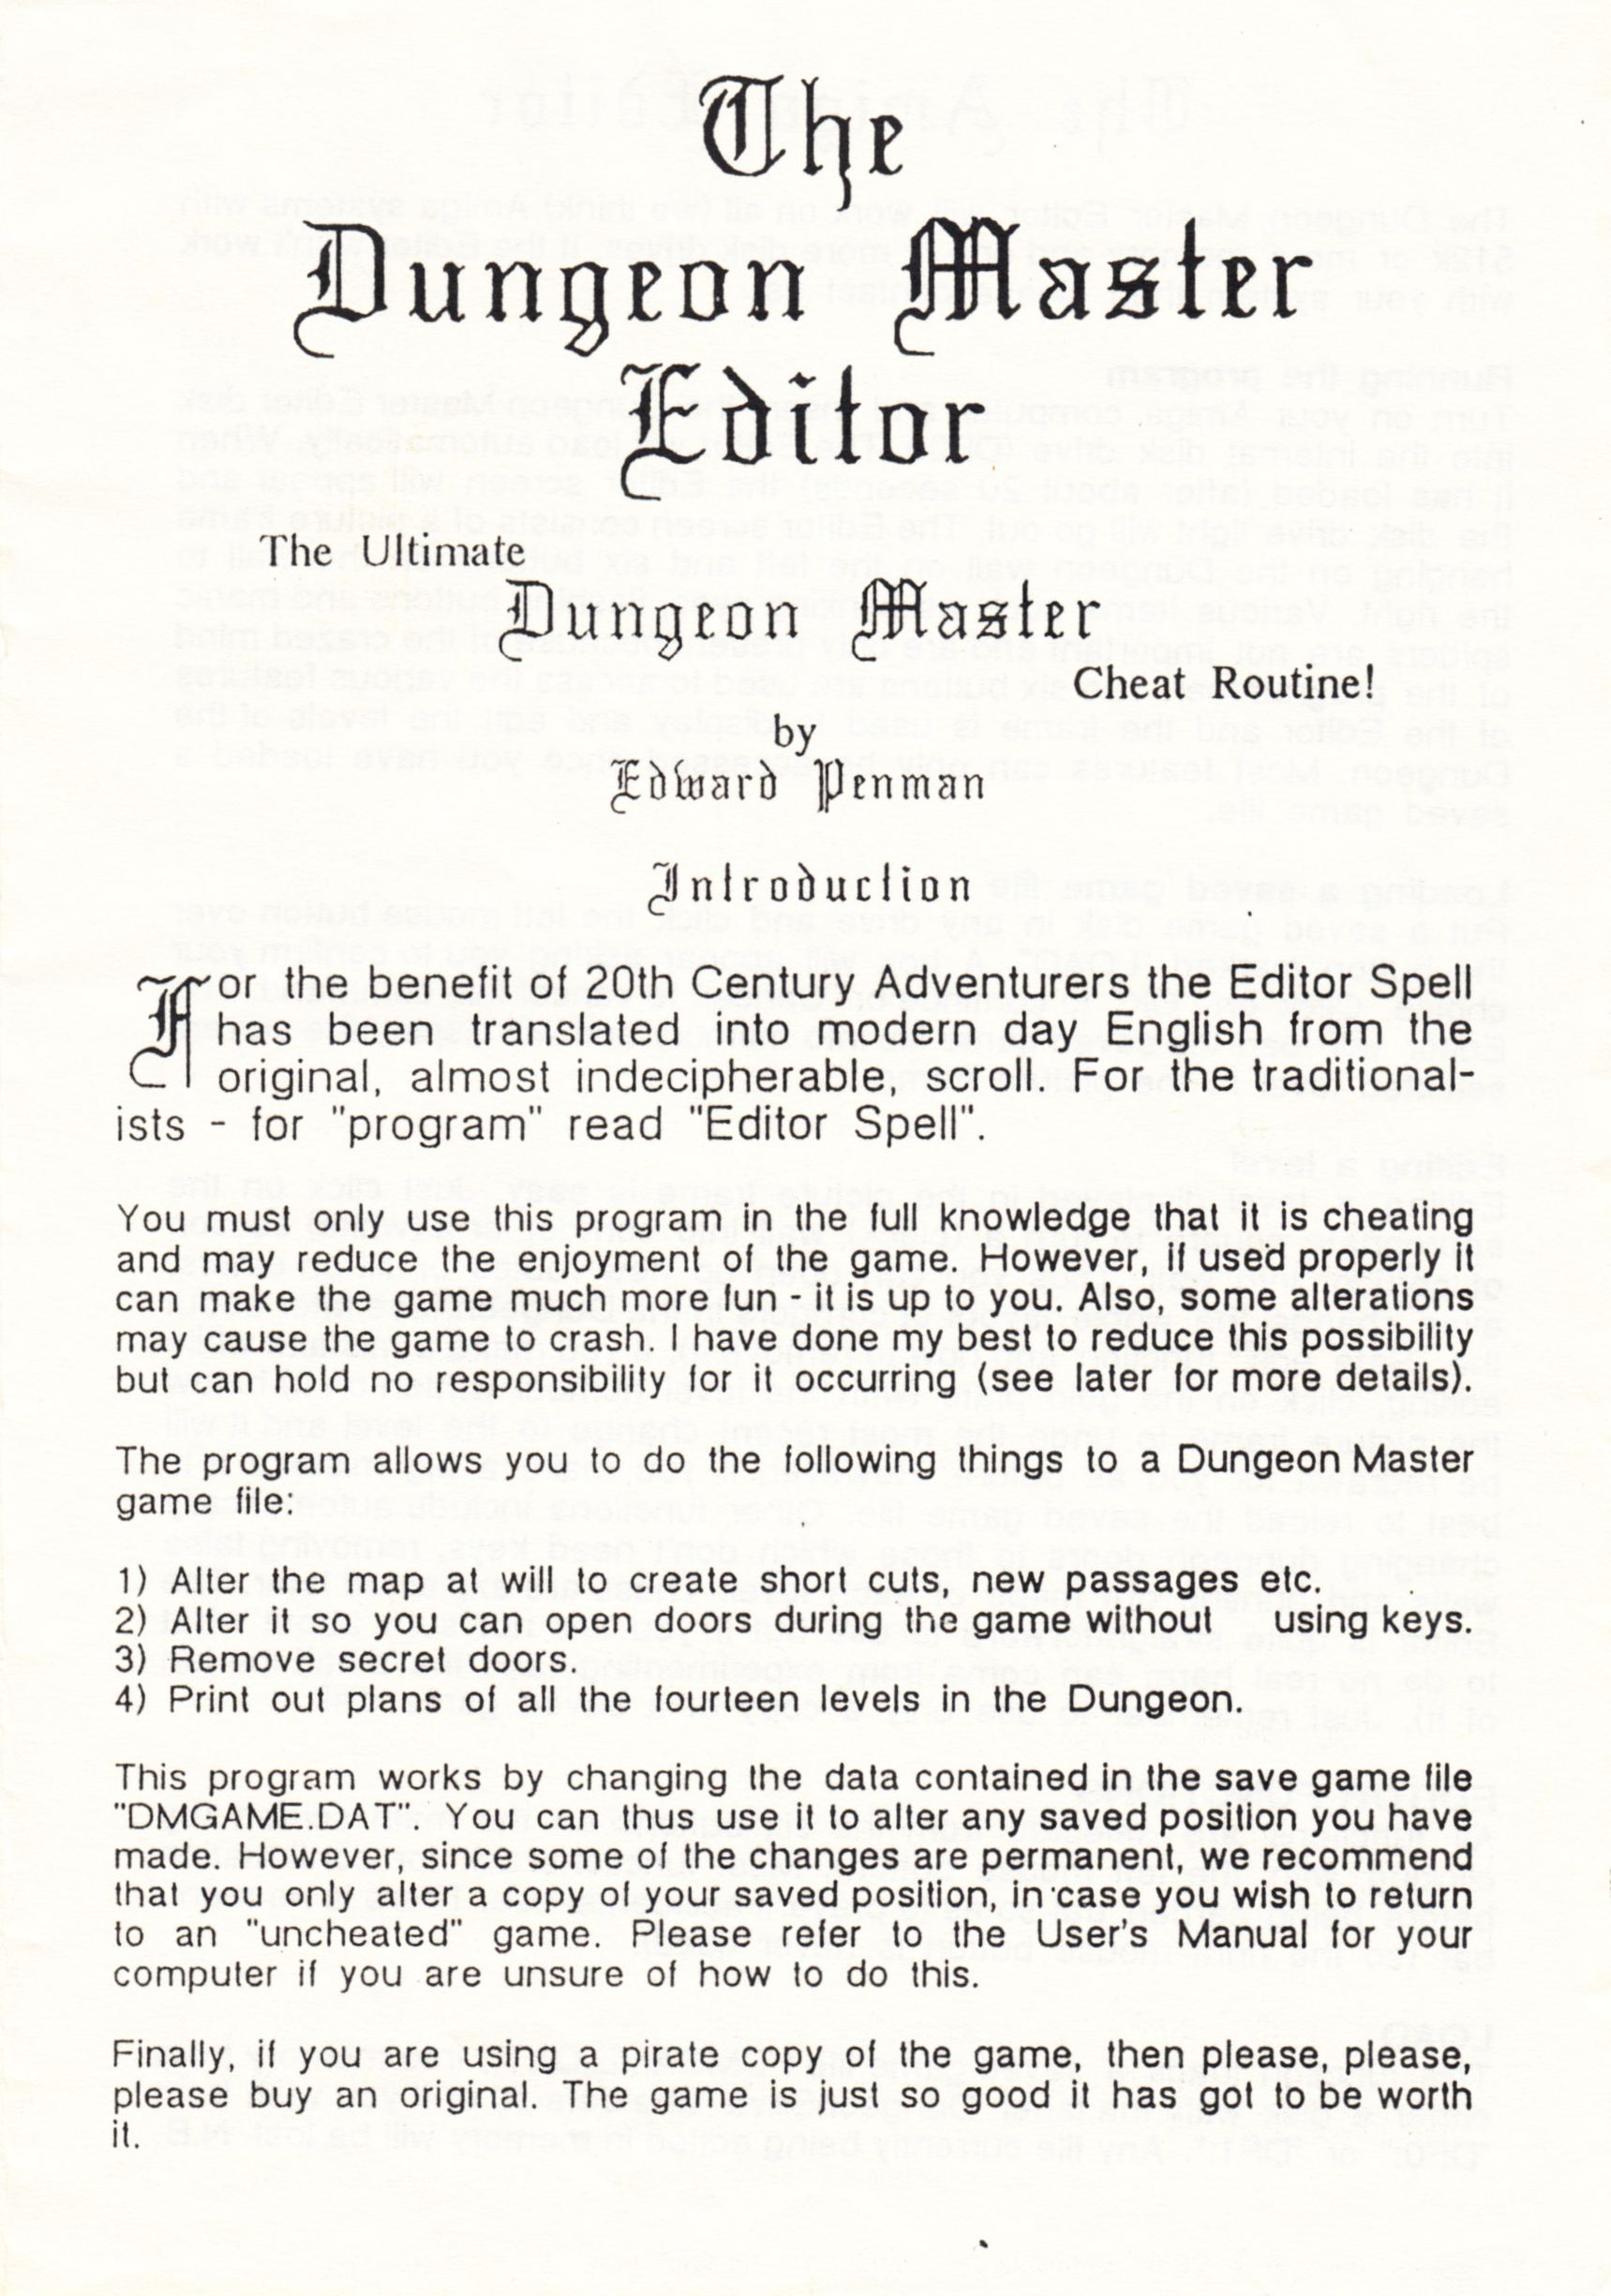 Tool - The Dungeon Master Editor - UK - Amiga - Amiga Manual - Page 001 - Scan